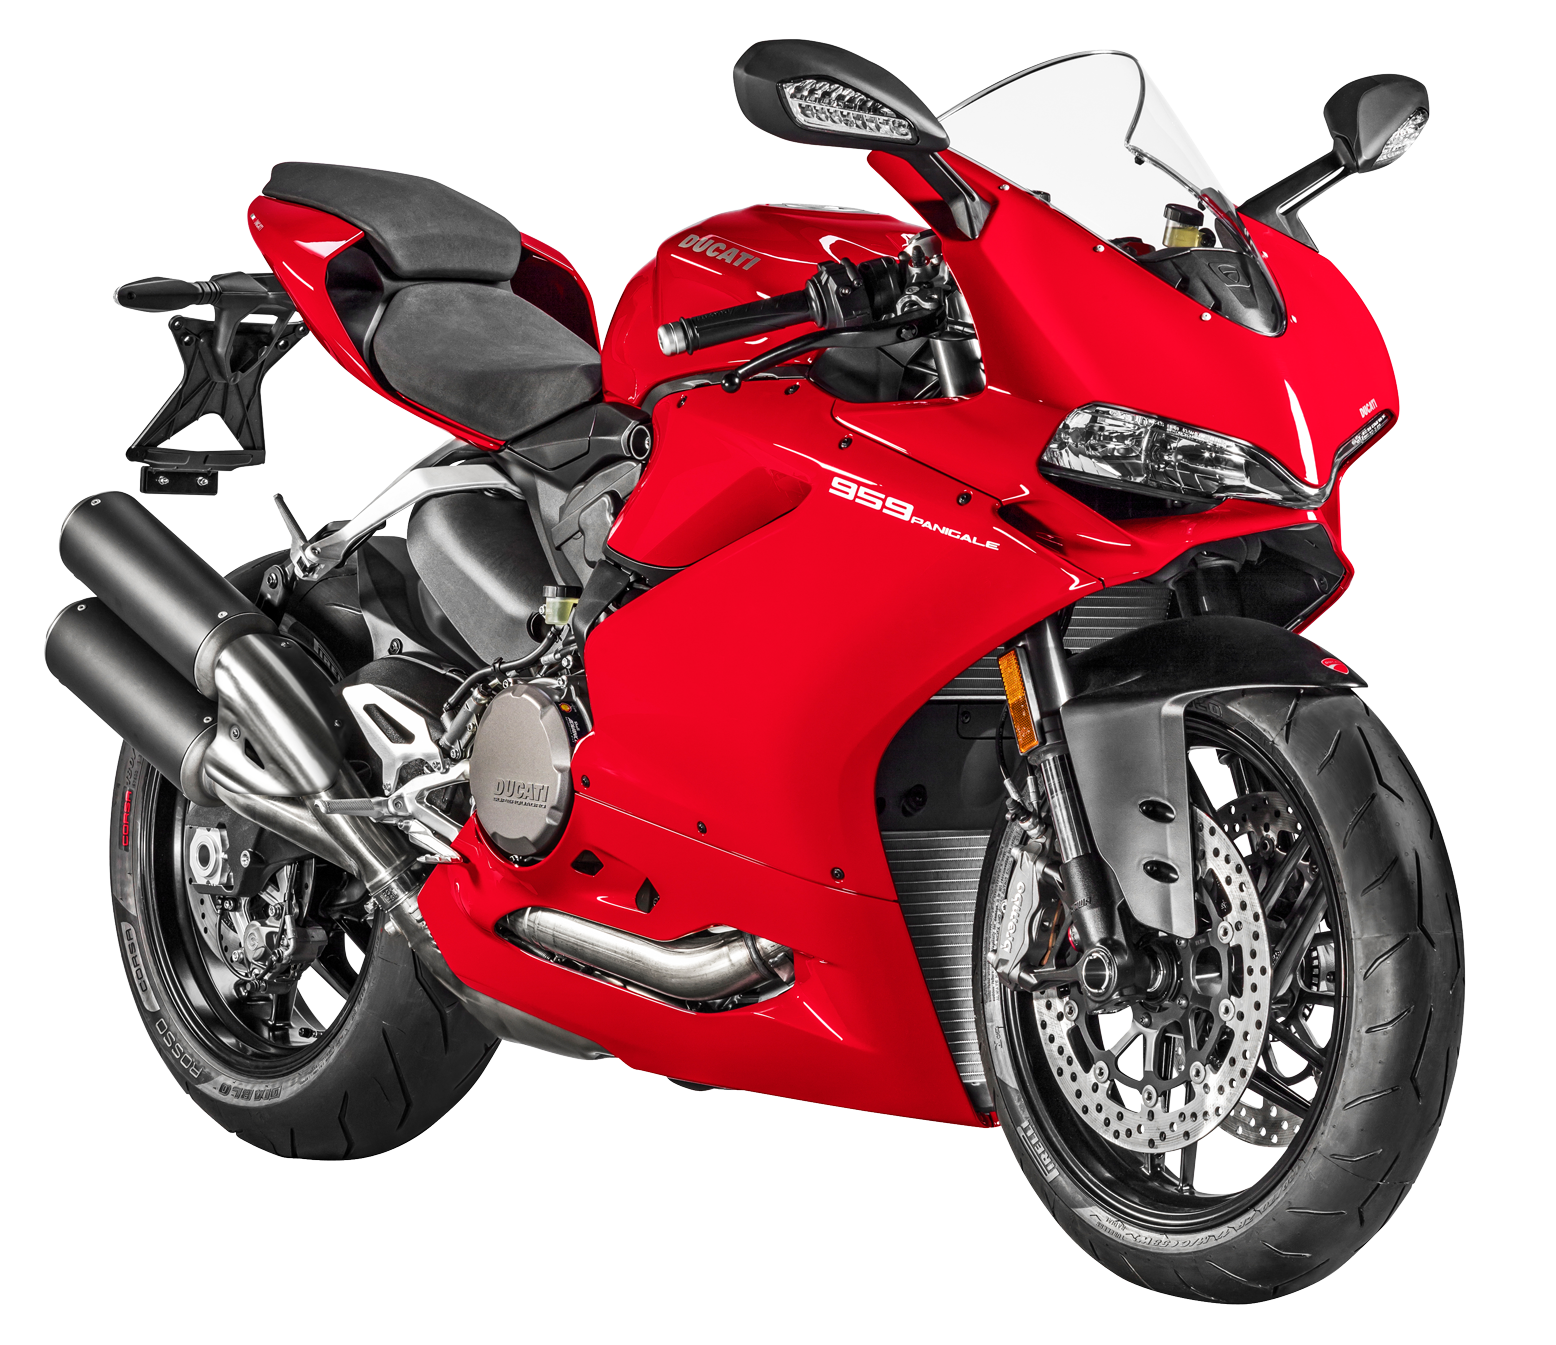 Ducati Picture PNG Image